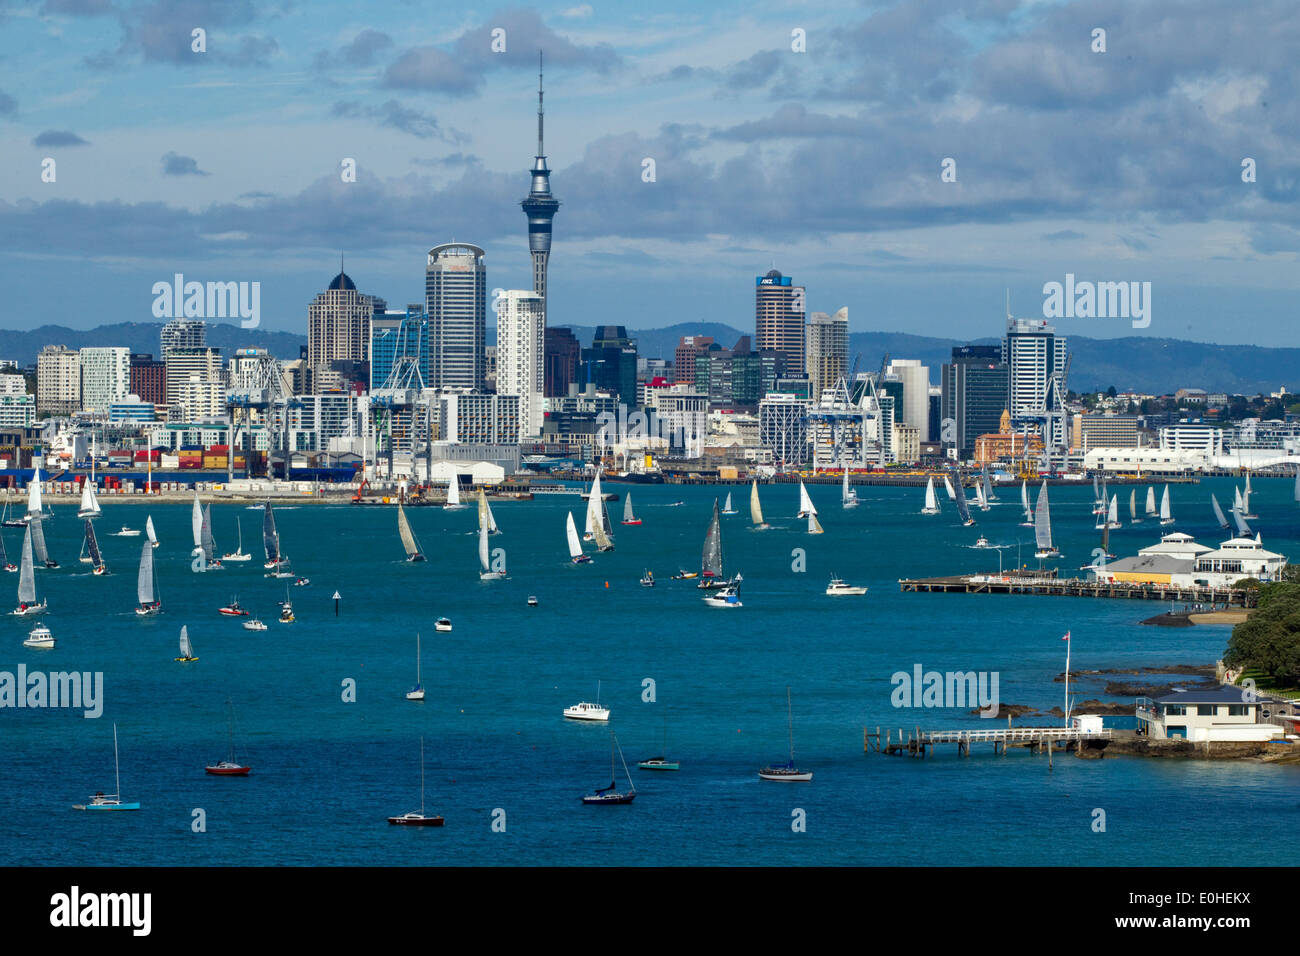 The annual Coastal Classic Yacht Race departs for the Bay of Islands, Auckland, New Zealand, Friday, October 25, 2013. - Stock Image